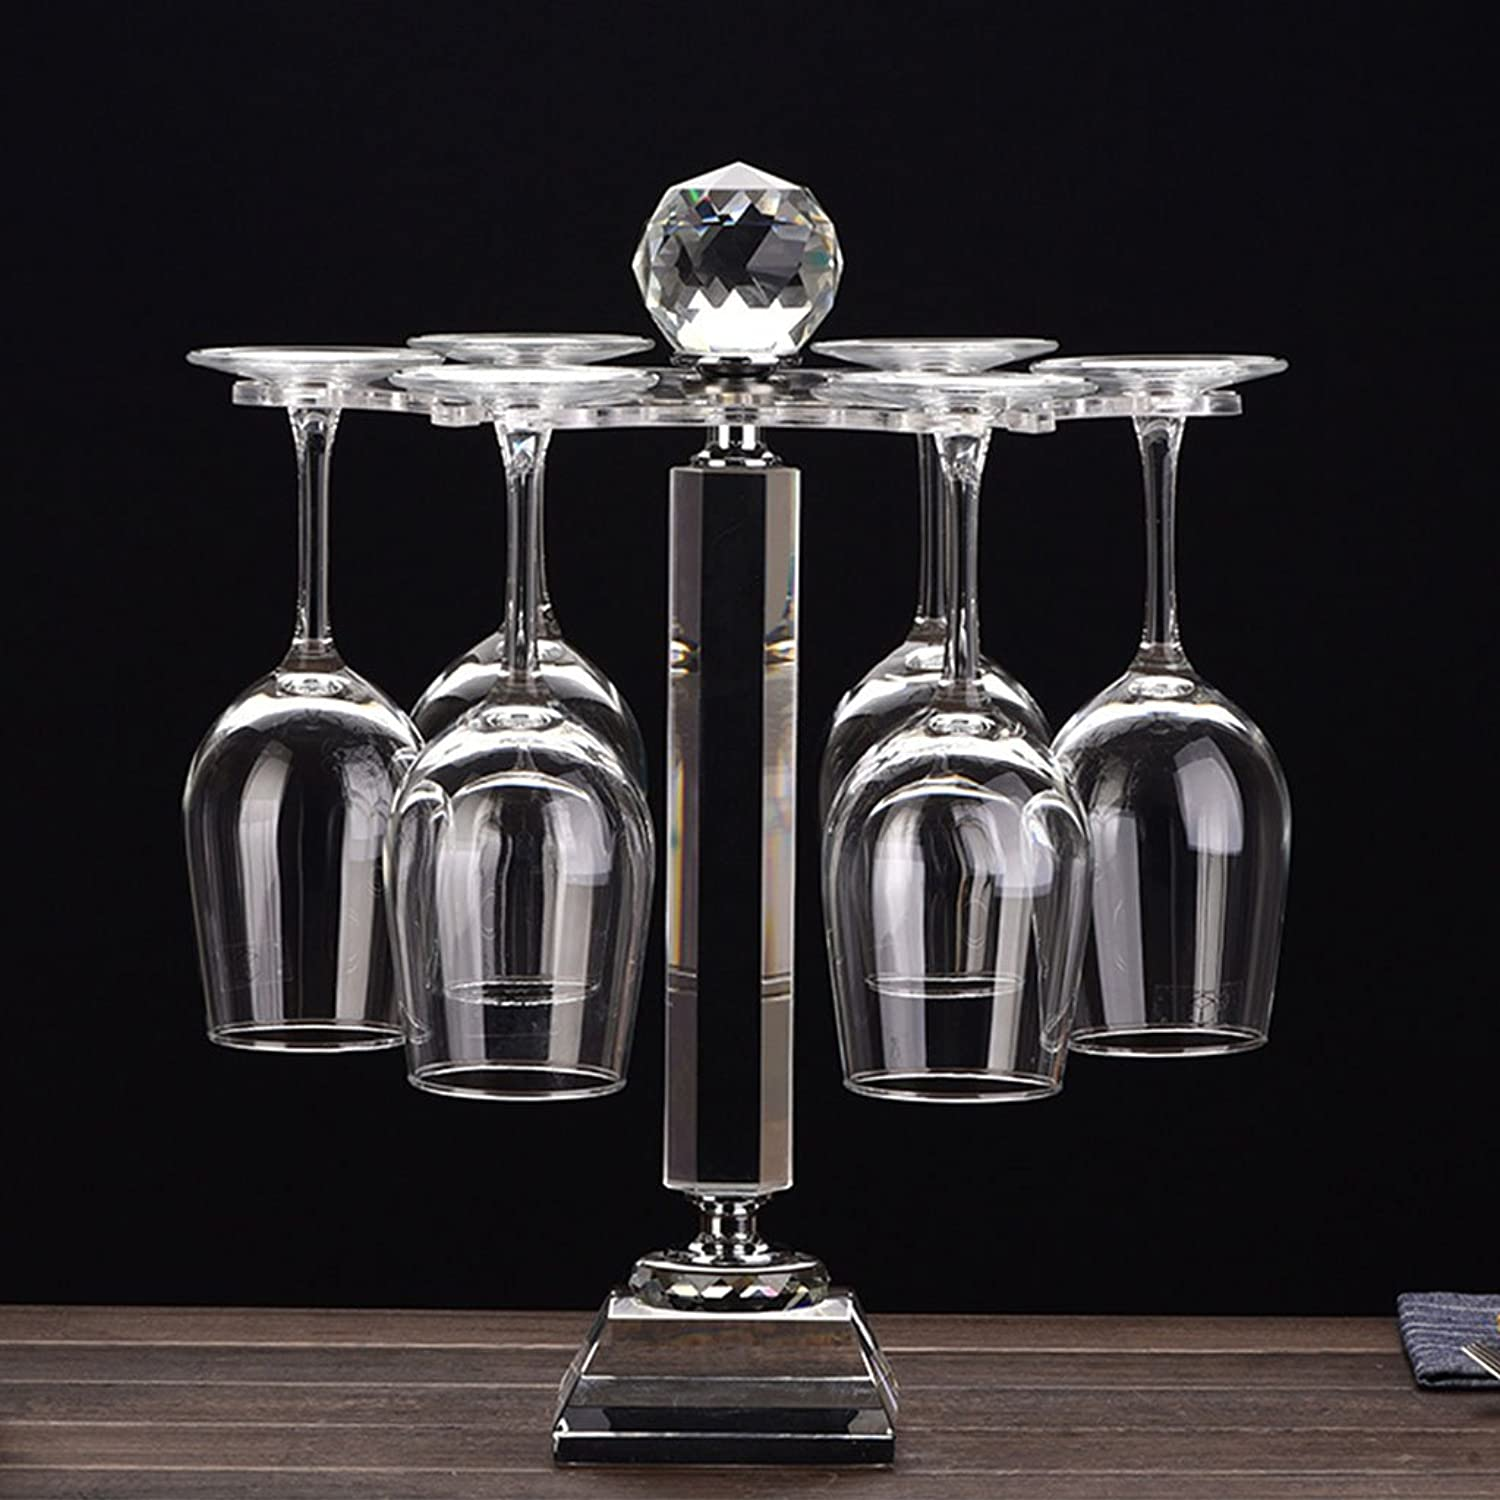 Tony home- Creative European Wine Rack Upside Down Home Crystal Wine Glass Holder Upside Down Cup Holder Wine Cabinets